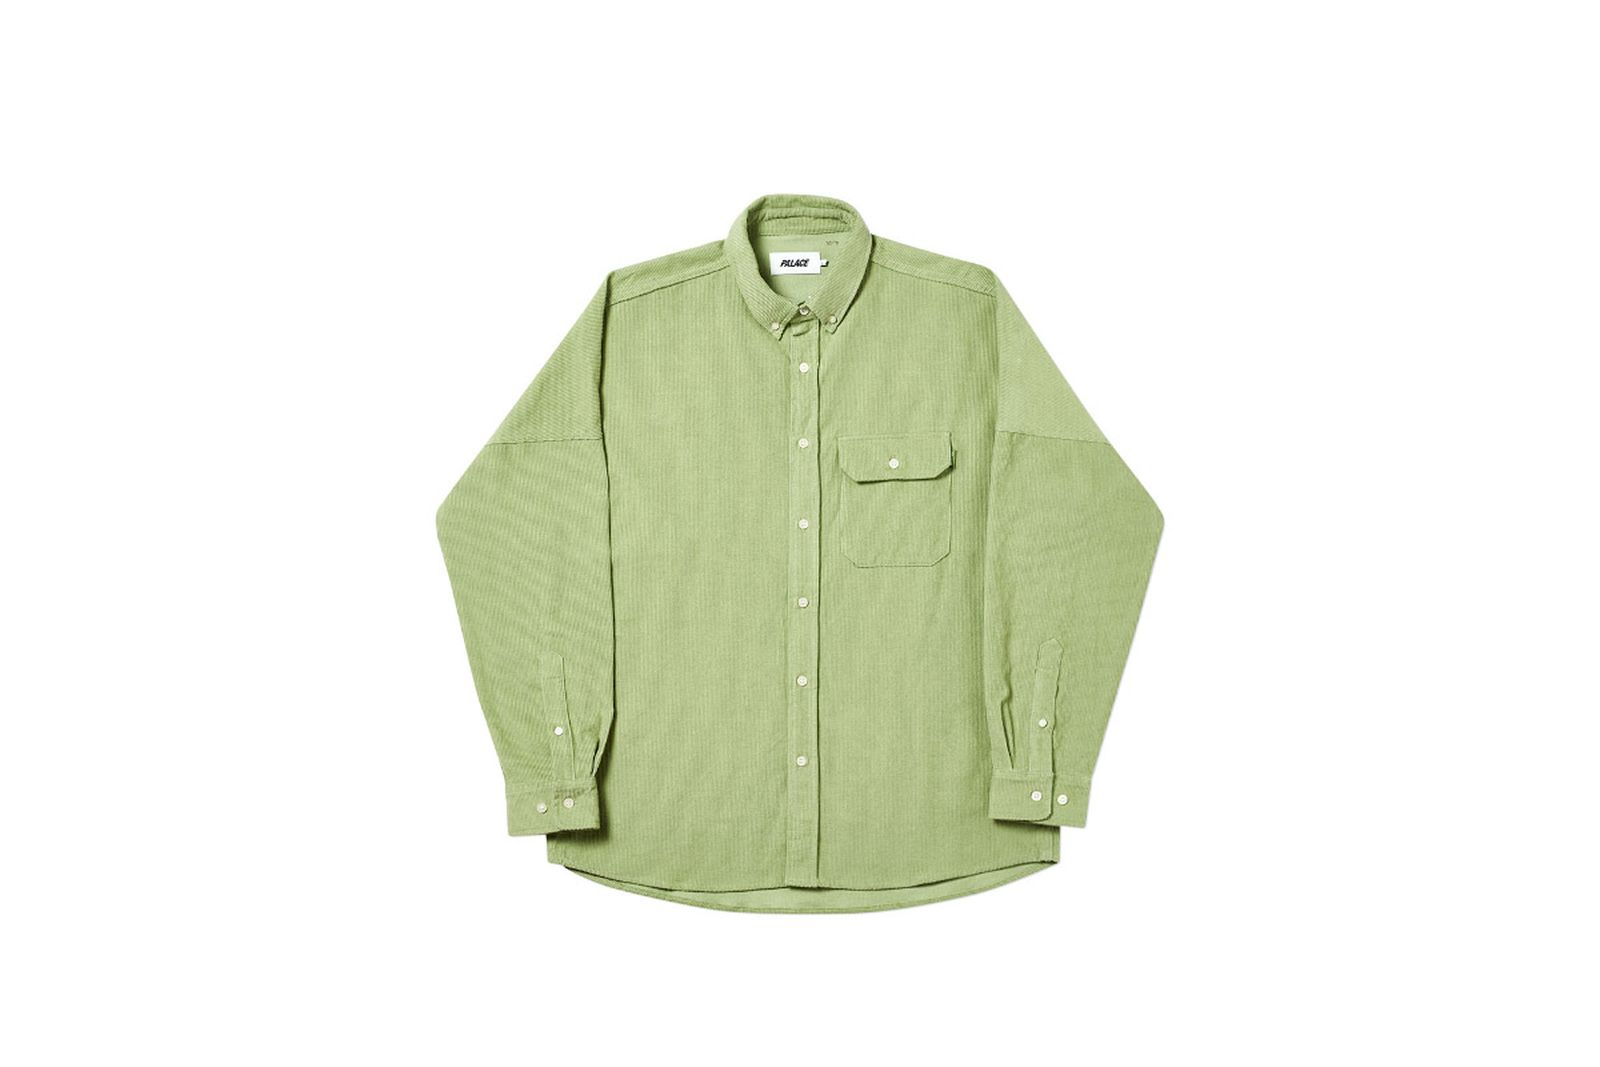 Palace 2019 Autumn Shirt Drop Cord green front fw19